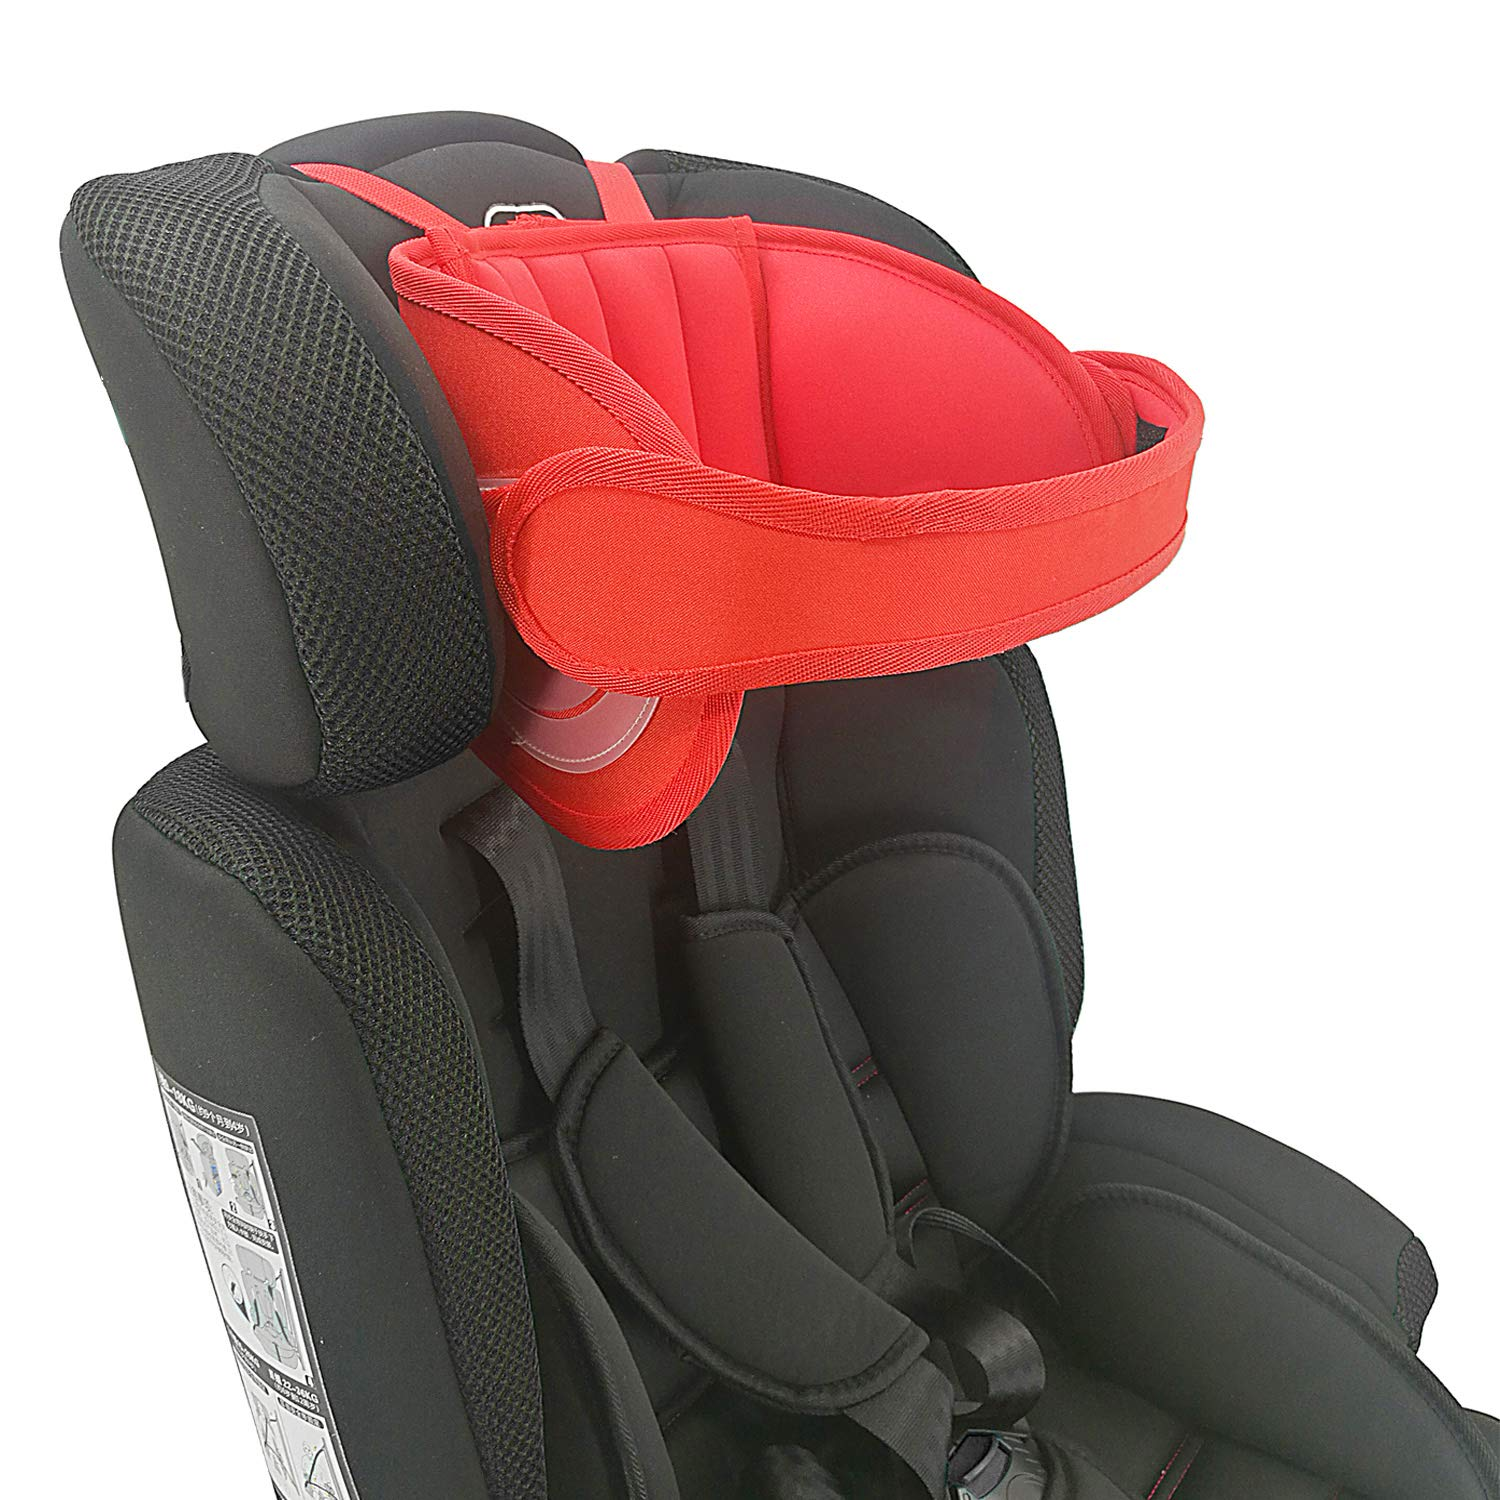 Adjustable Child Car Seat Head Support, Universal Suitable for Both Children and Adults, Head Protect Pad on Child Car Seat, Safety Car Sleeping Headrest for Child, Infants, Toddlers and Adults (Red) by Cozyin Baby